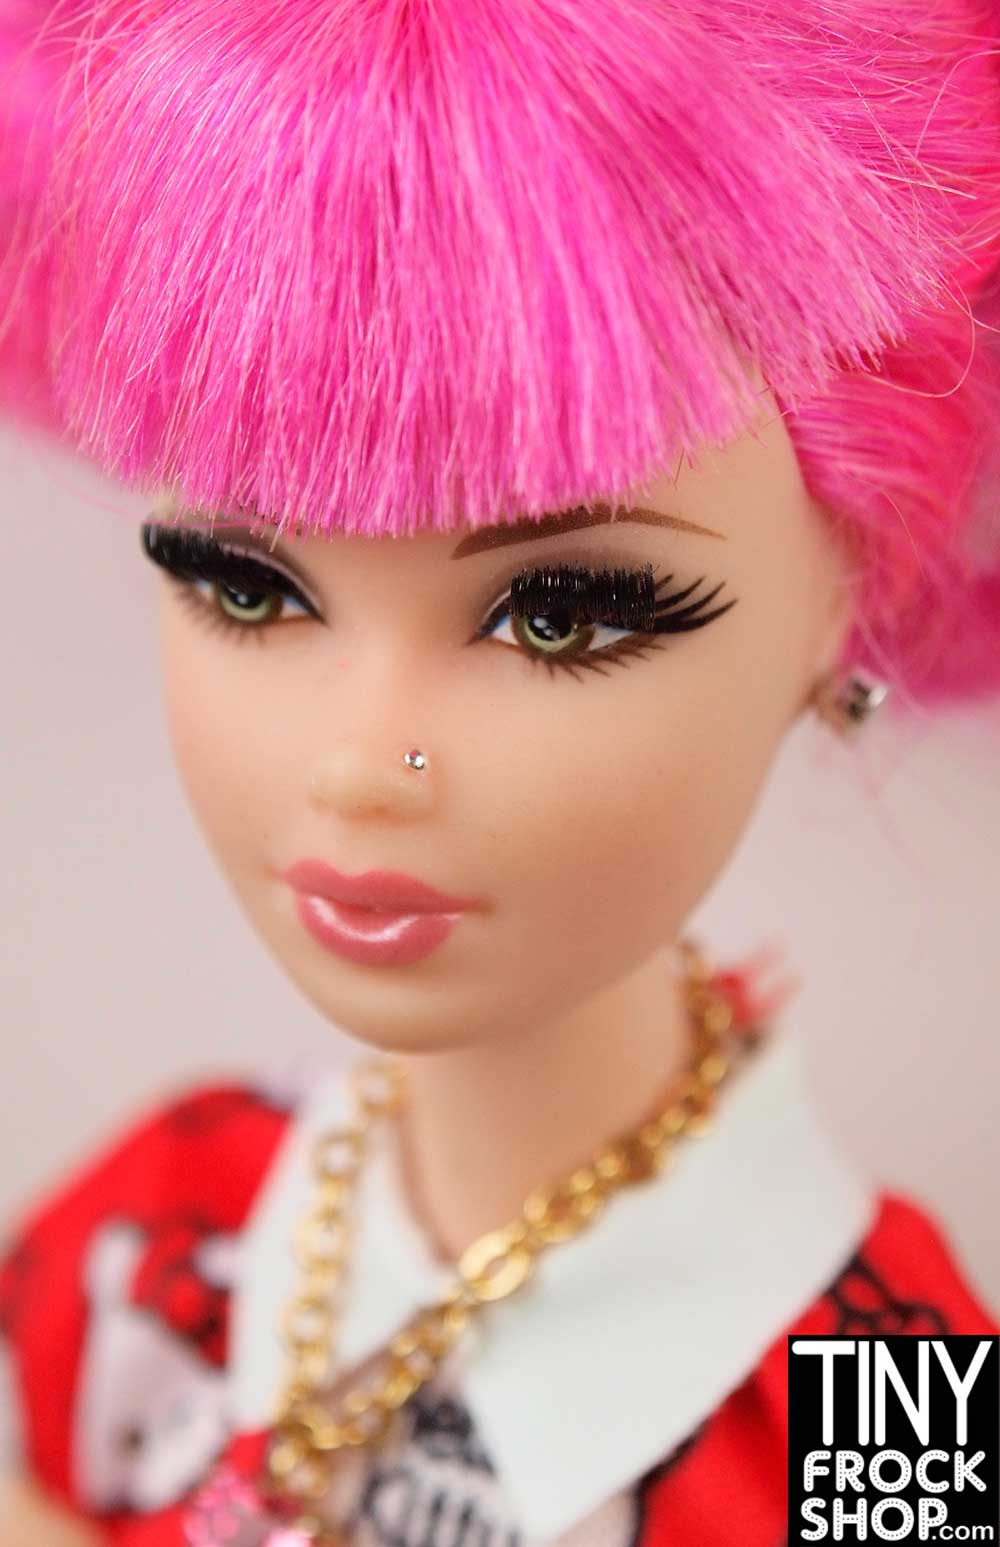 Tiny Frock Shop Barbie Small Metal Nose Stud Piercing Pack Of 6